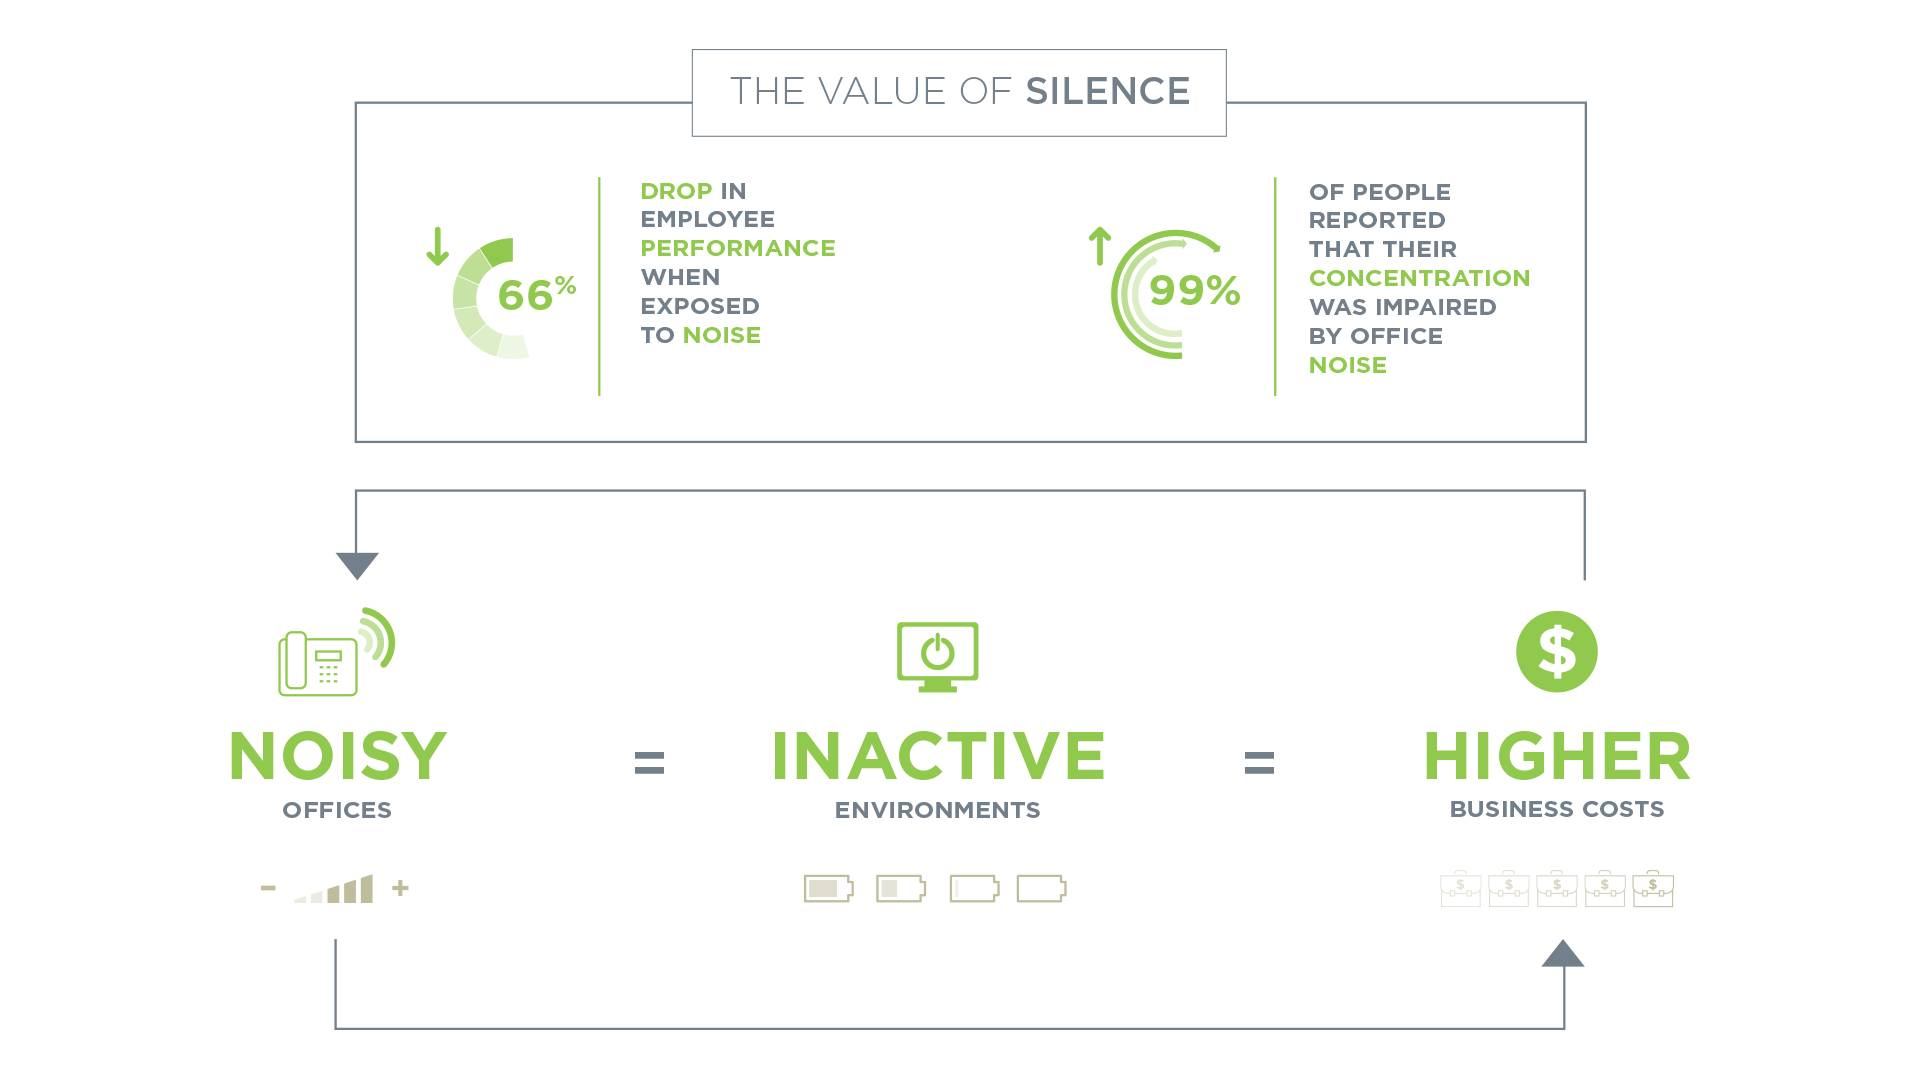 Infographic showing how good acoustics are important in office environments